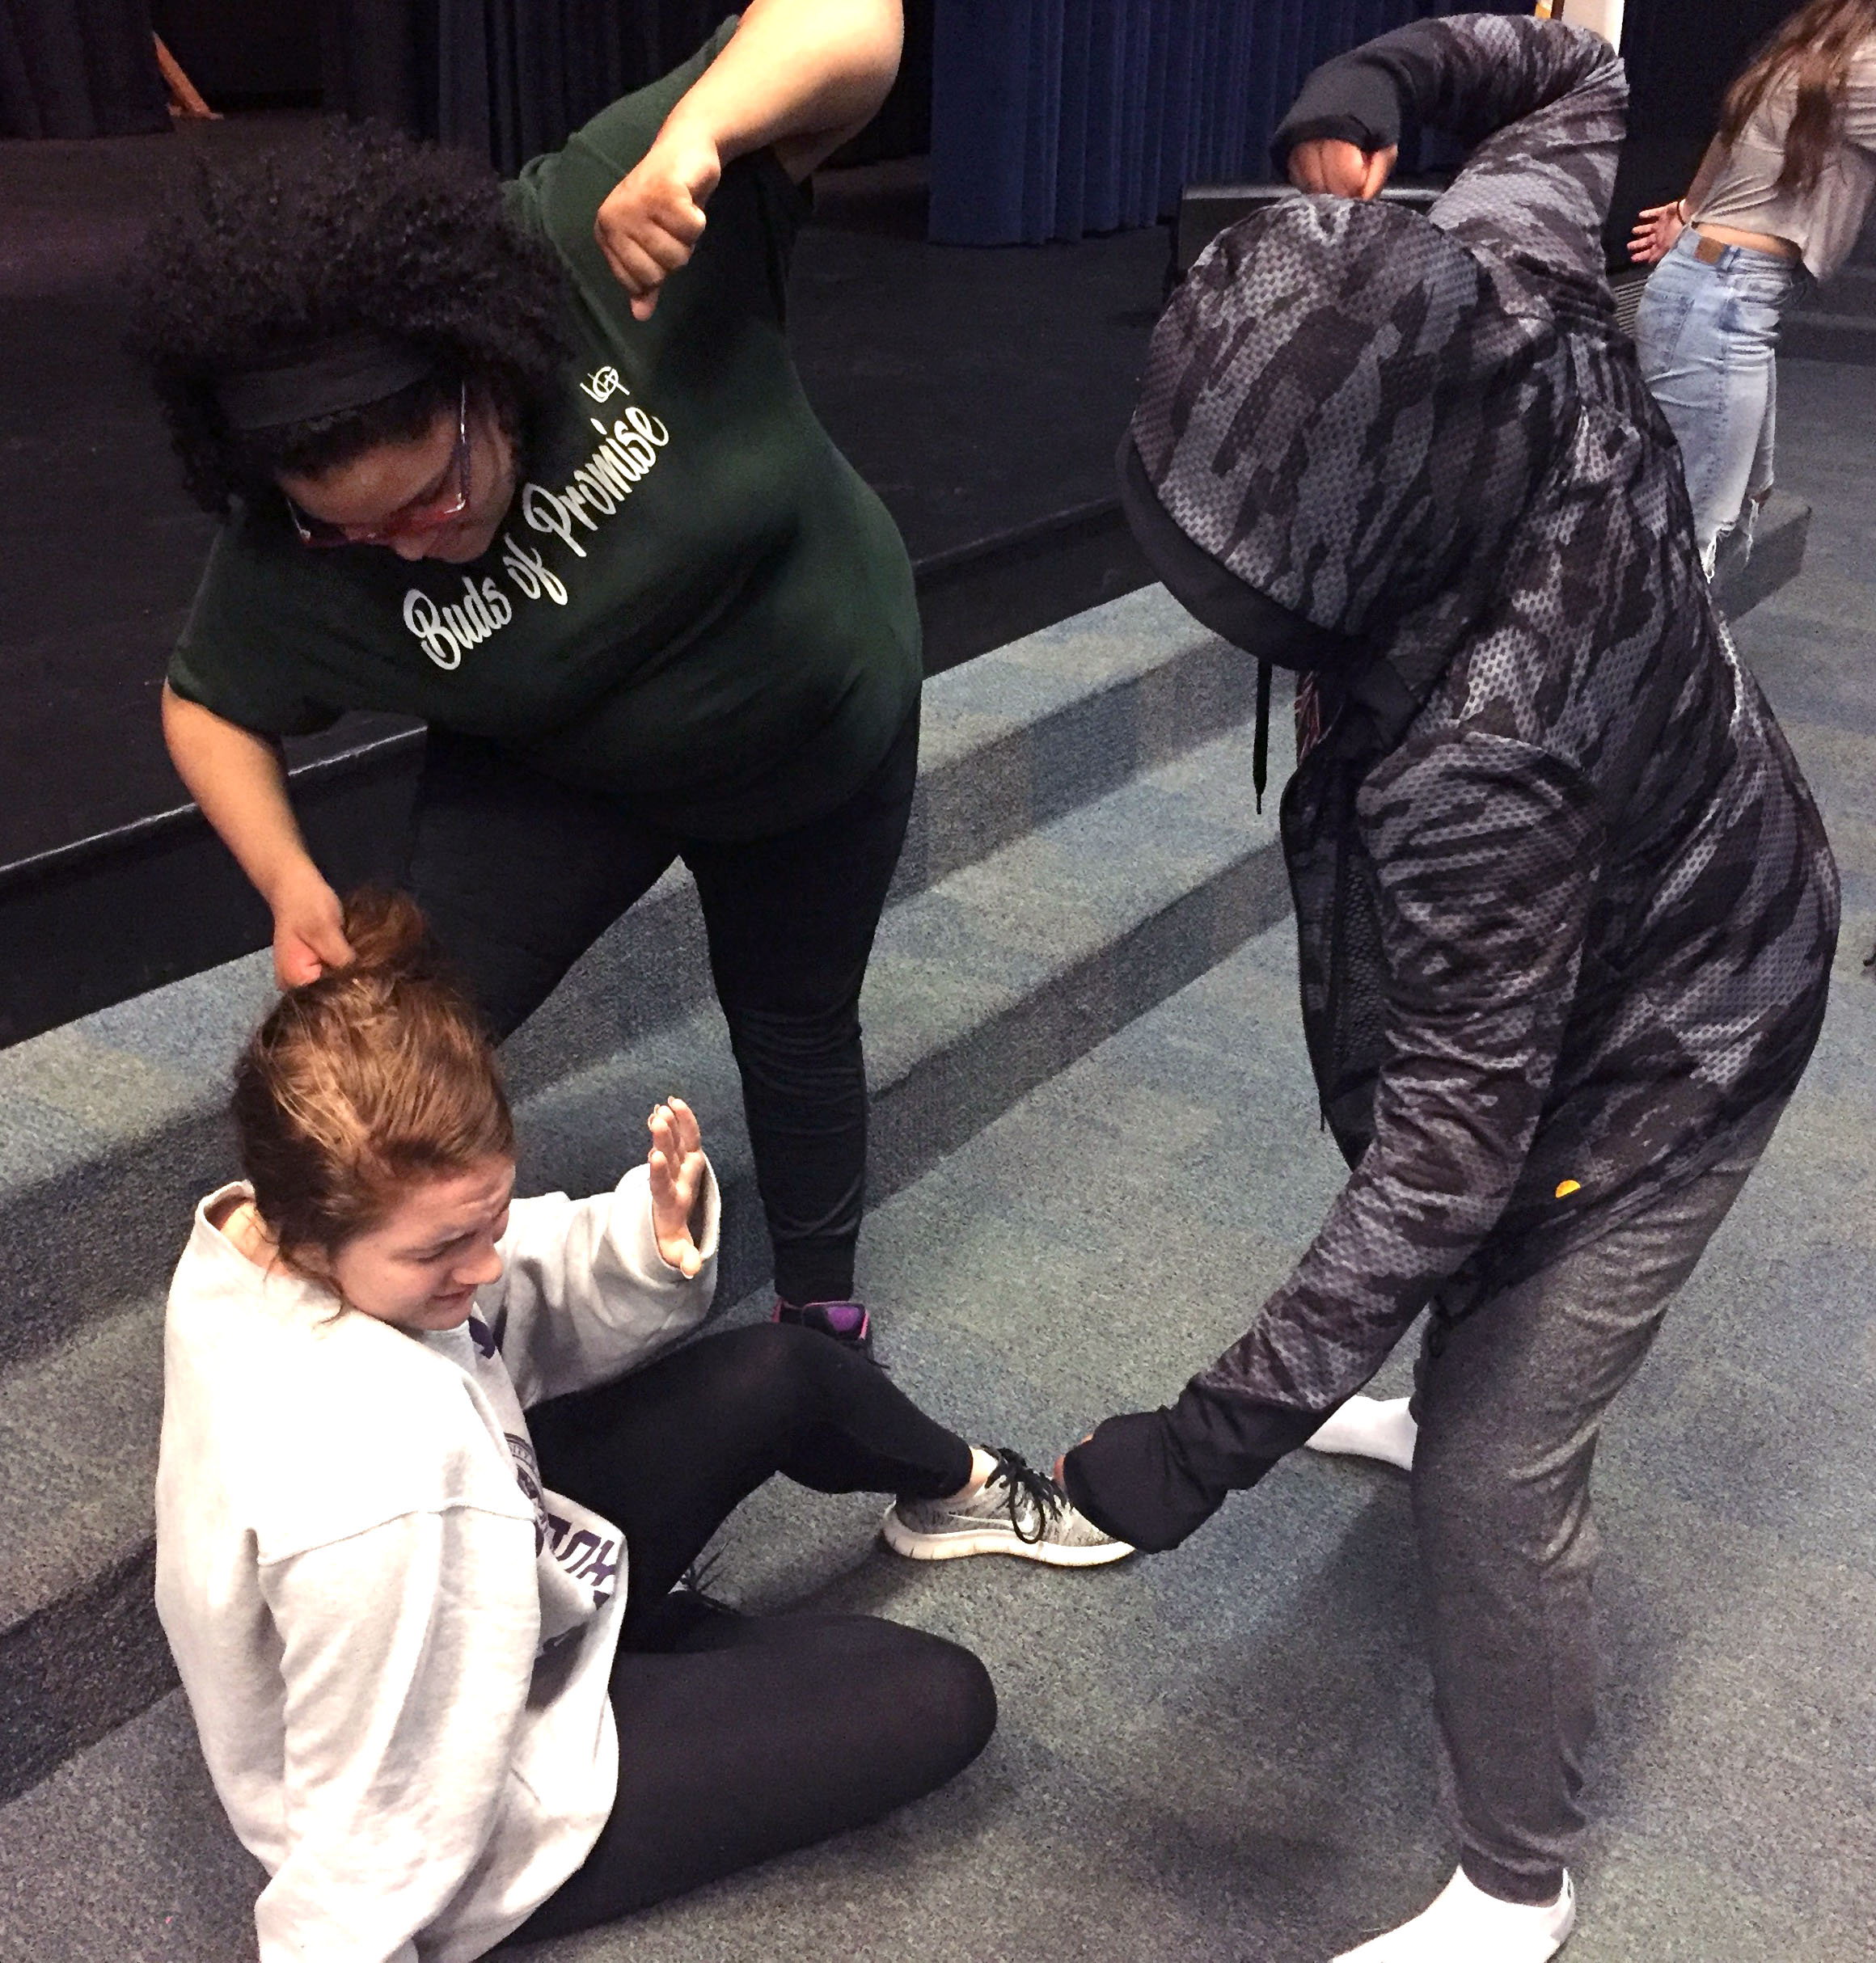 Zy'kiuh Marsh, left, and Gisselle Aleman Moreno threaten Corrine Collison as part of a small-group exercise during the Scene X Scene acting intensive at Jordan-Matthews.